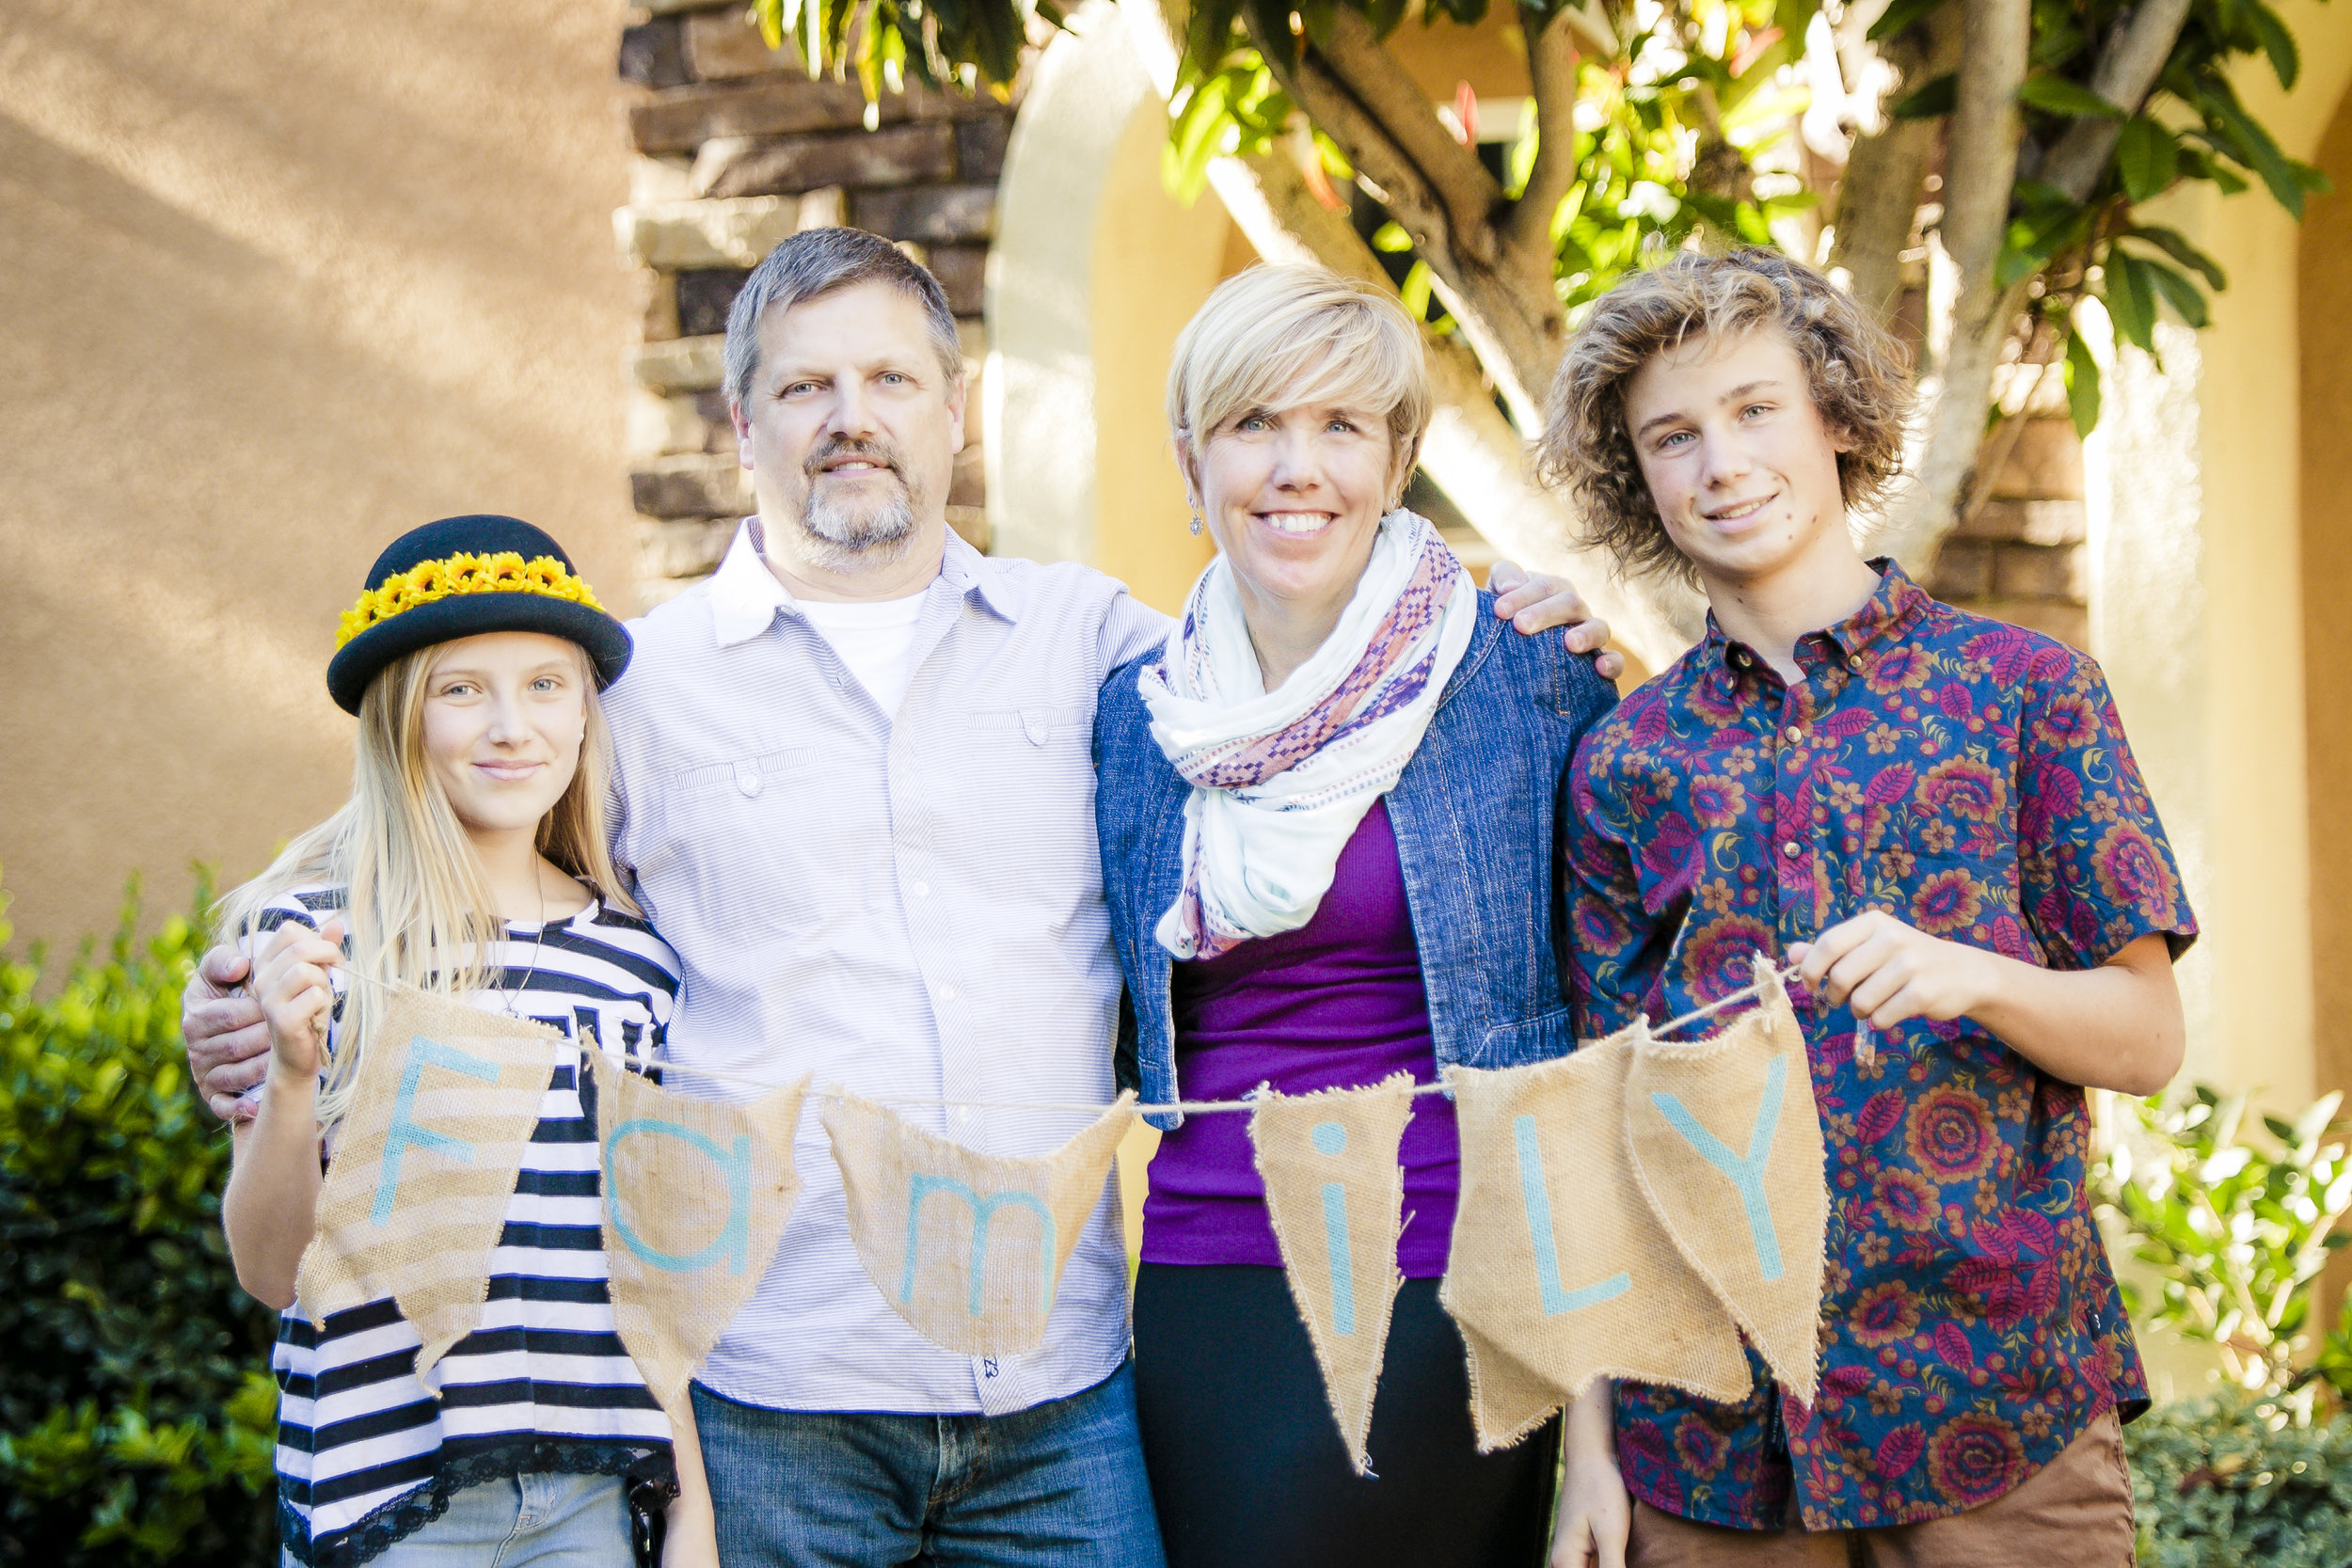 Everyone in the Cecil family coordinates with shades of purple and navy with differing patterns.